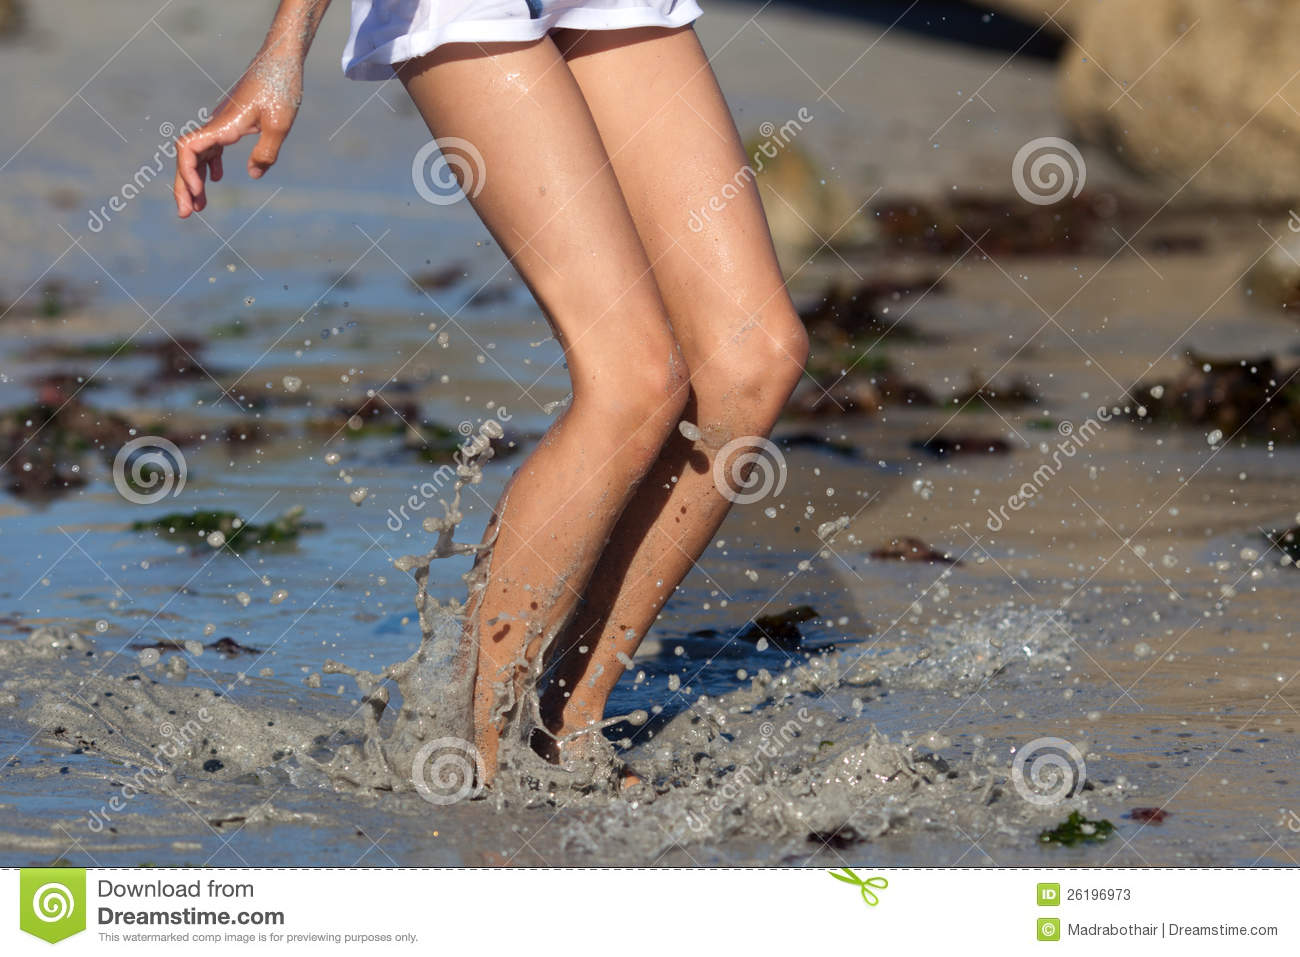 Girl jumps in muddy water